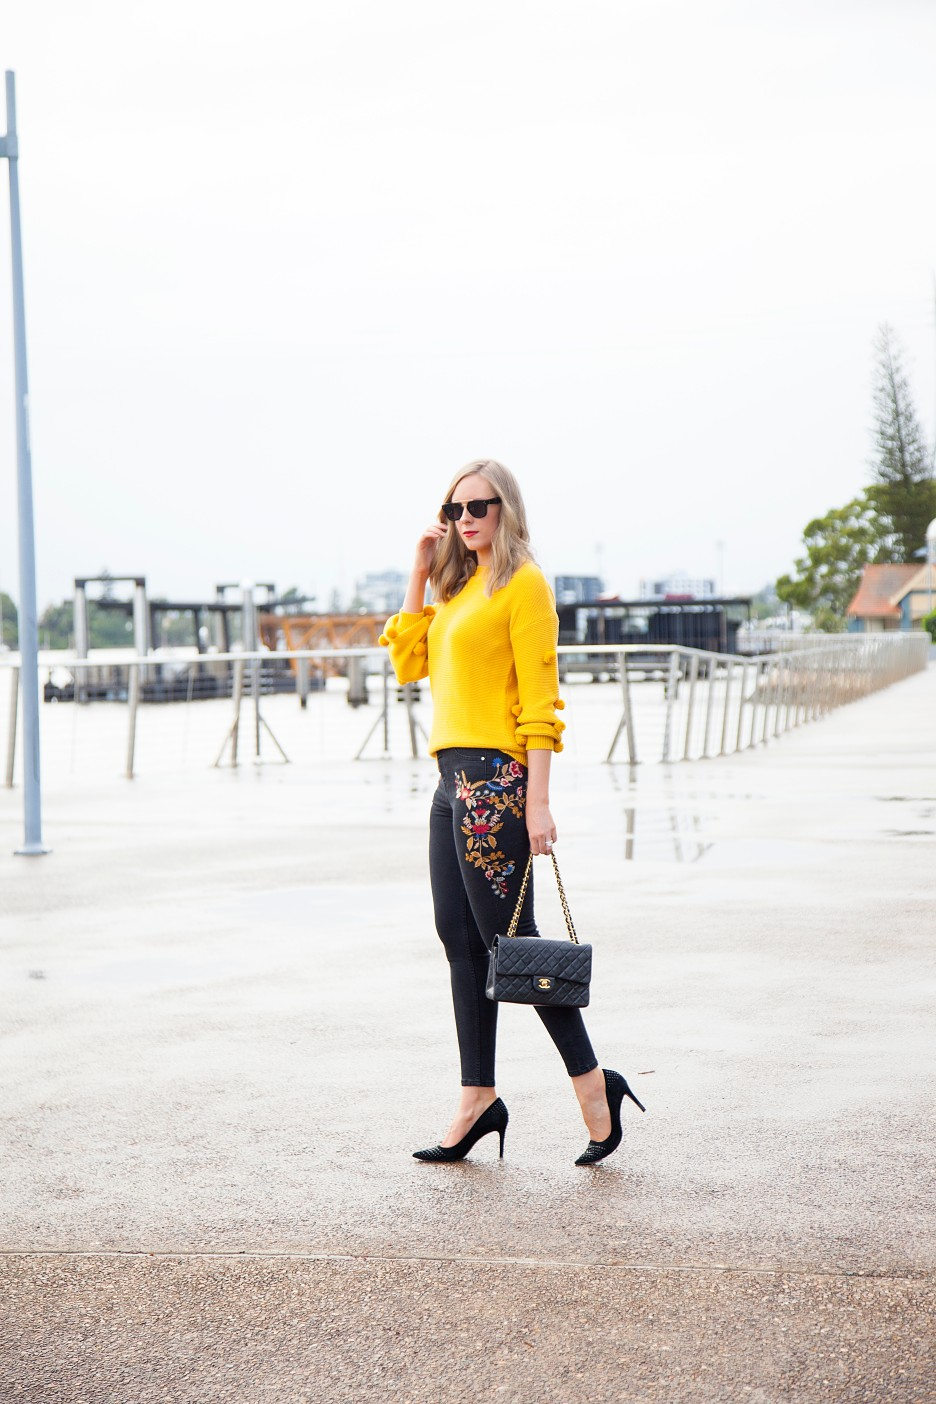 Style Elixir blog Lauren Slade marigold color trend fashion style outfit ideas 2